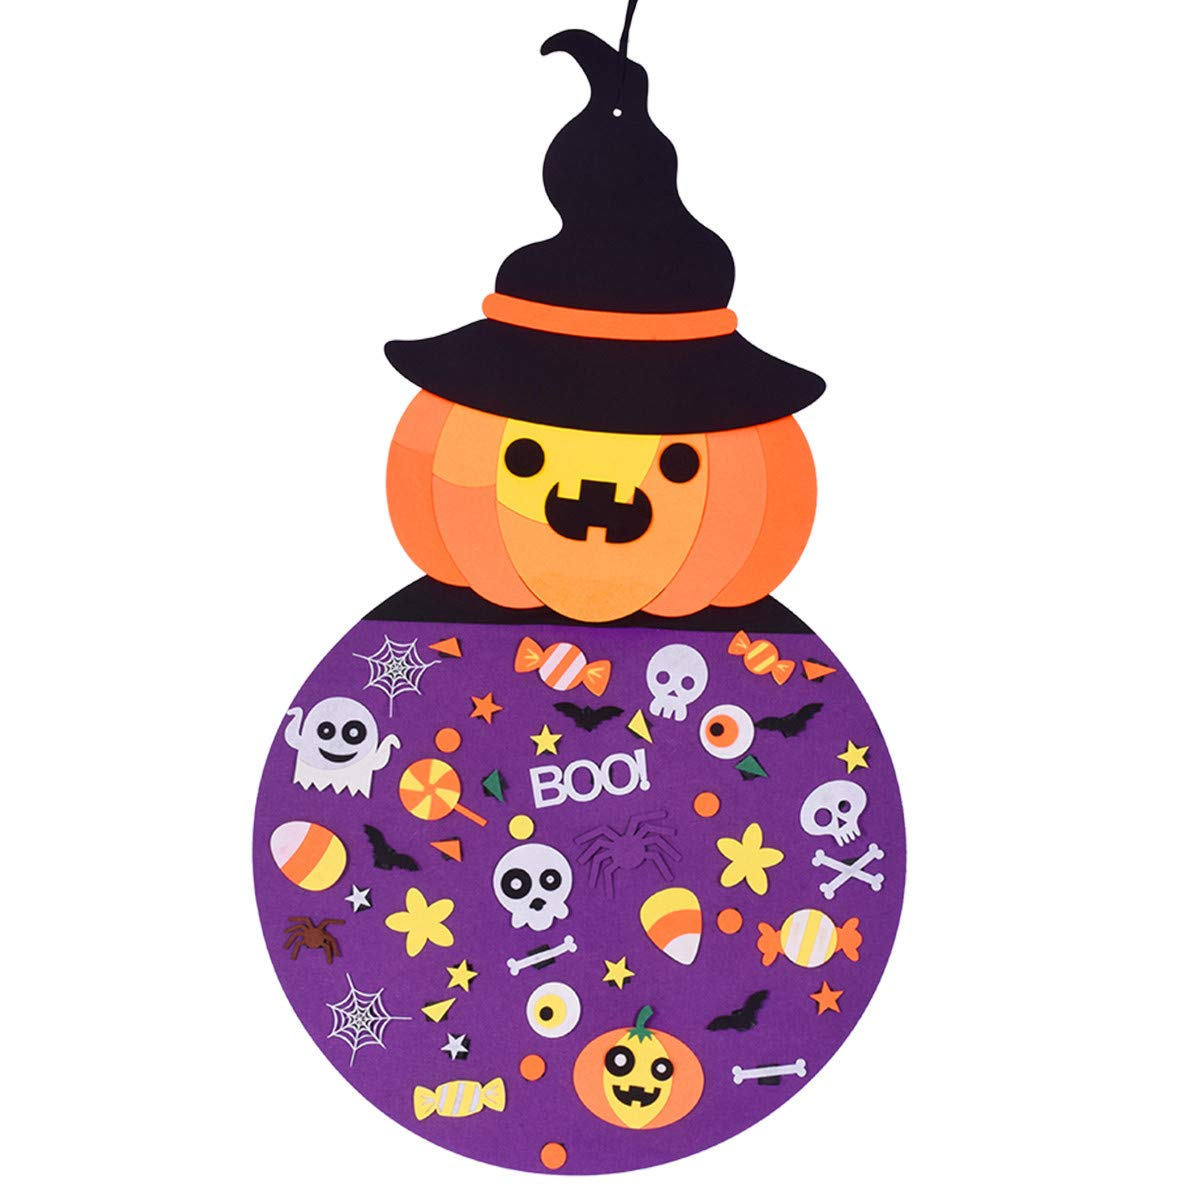 Max Fun 2.8 Ft DIY Witch Felt Crafts Ornaments with Hanging Craft Kits for Kids Halloween Birthday Party Favor by Max Fun